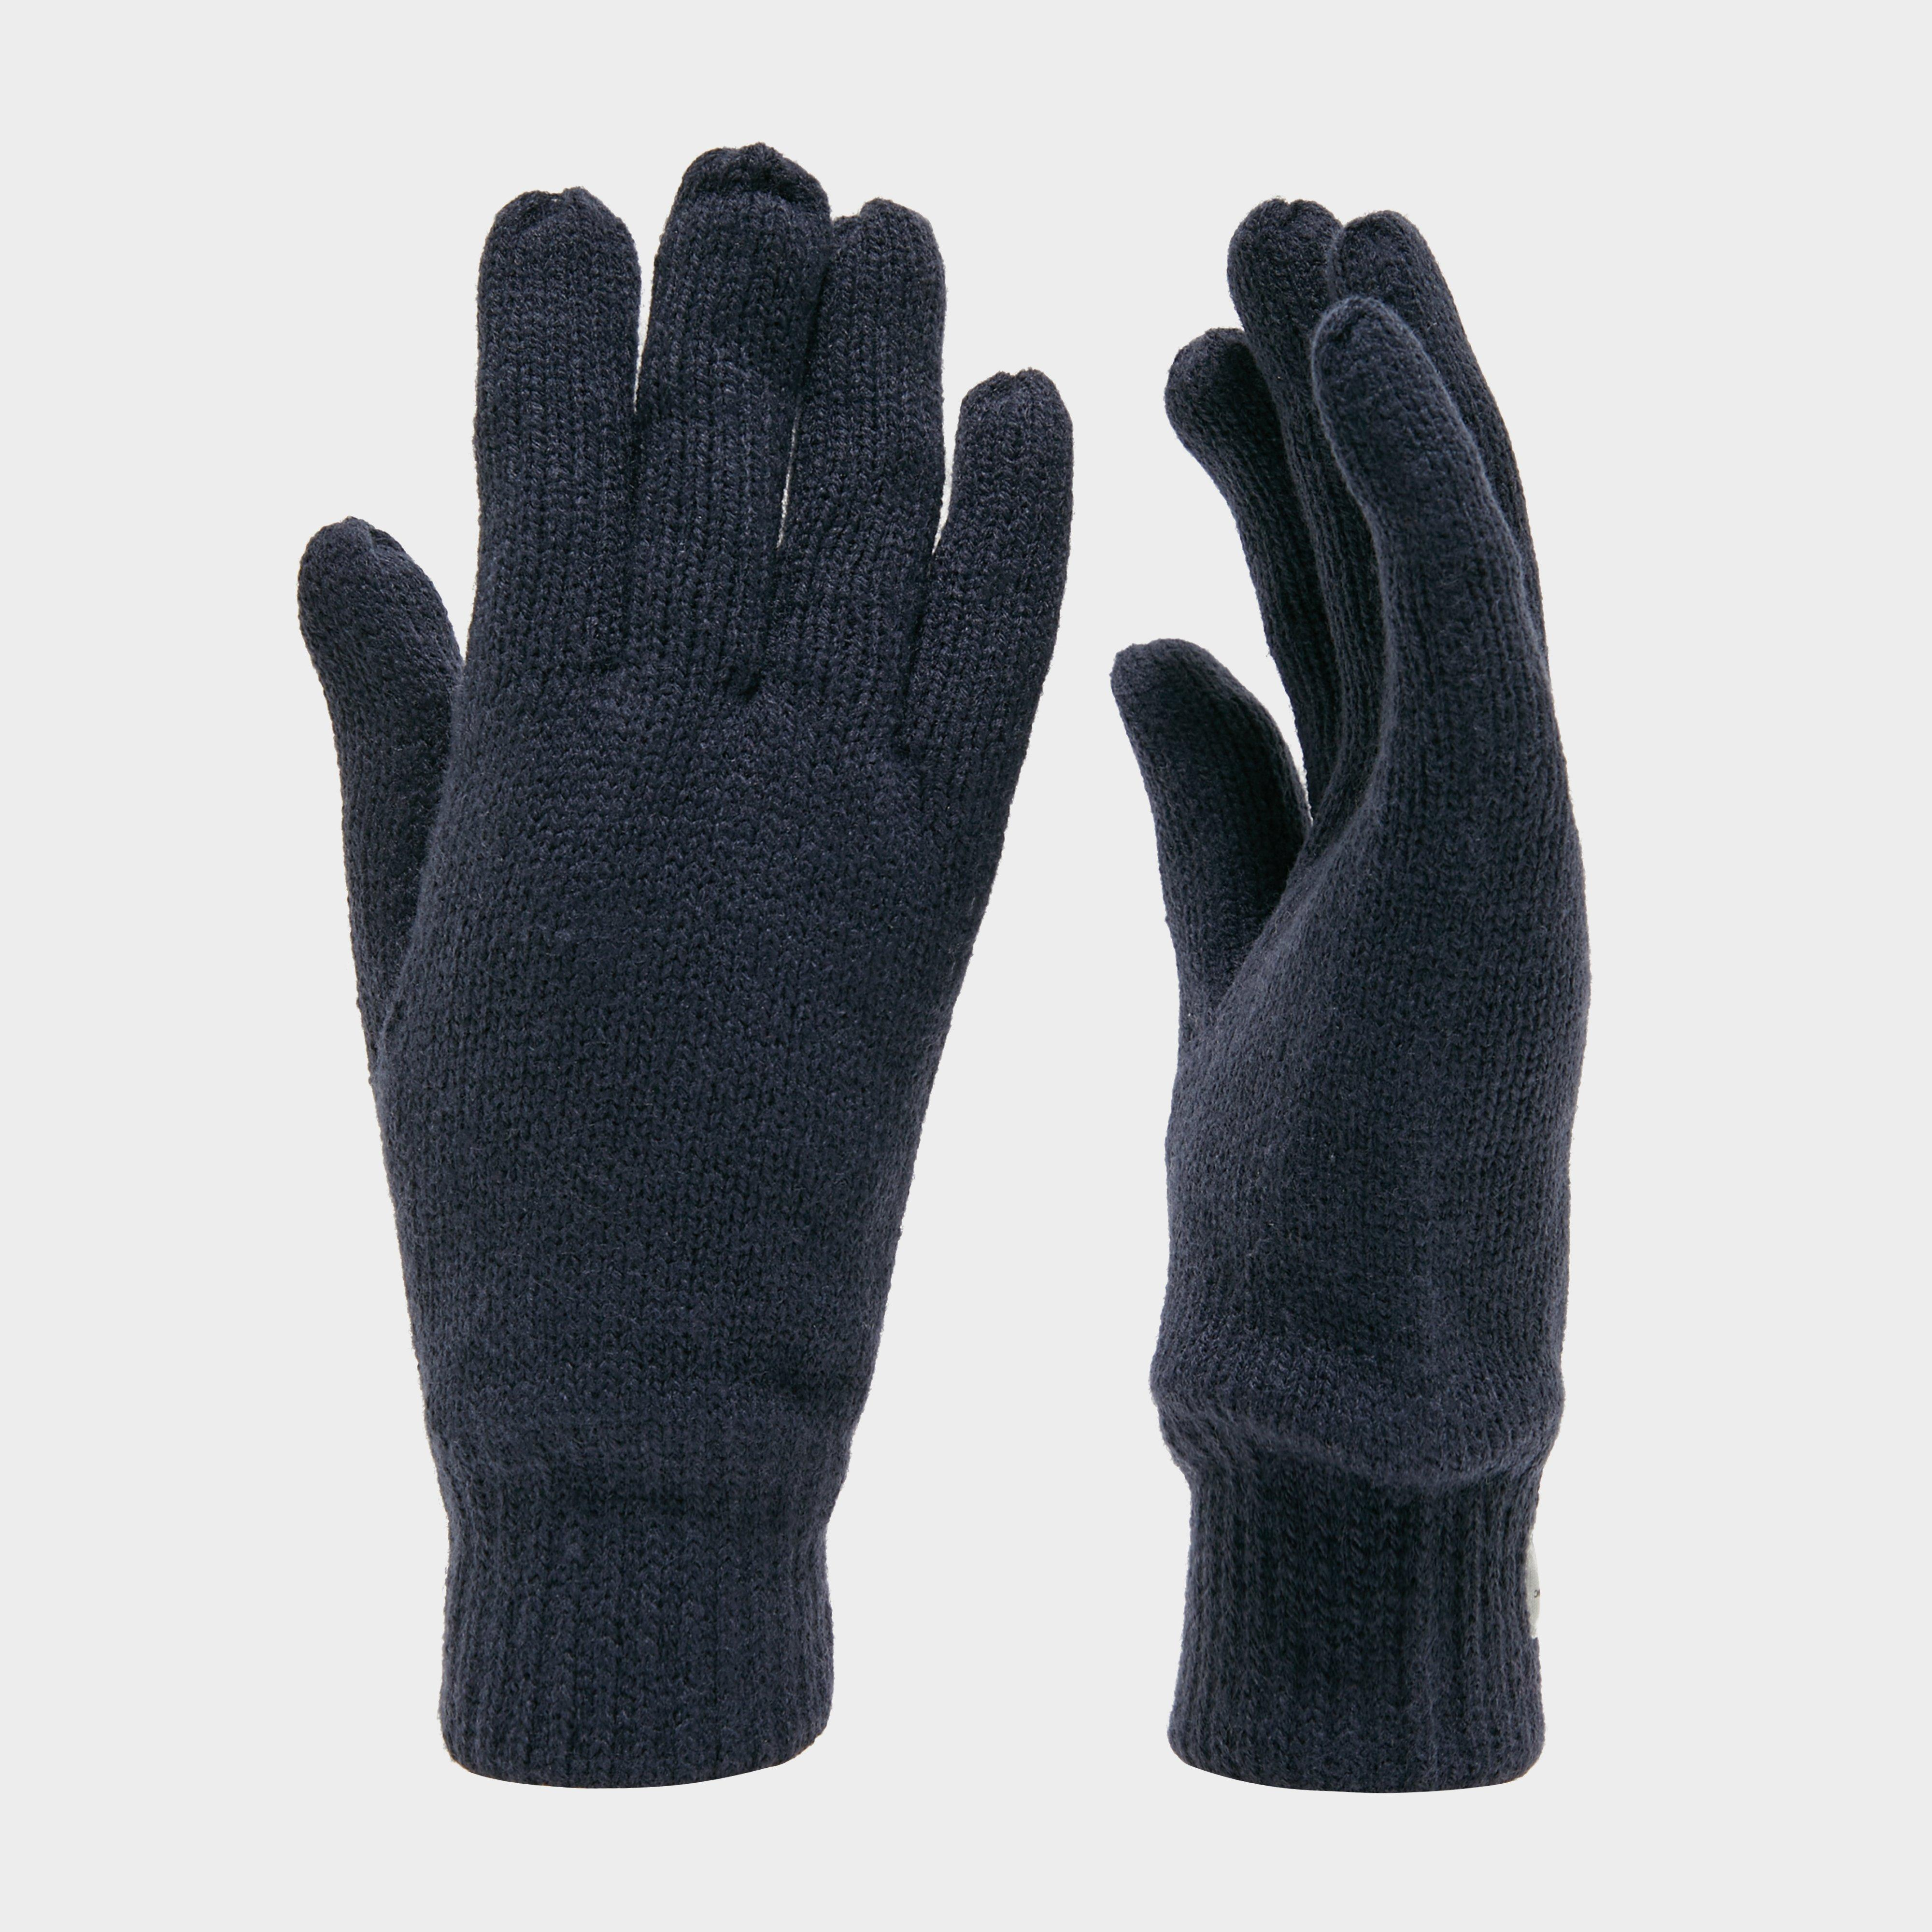 Peter Storm Thinsulate Knitted Gloves - Navy, Navy